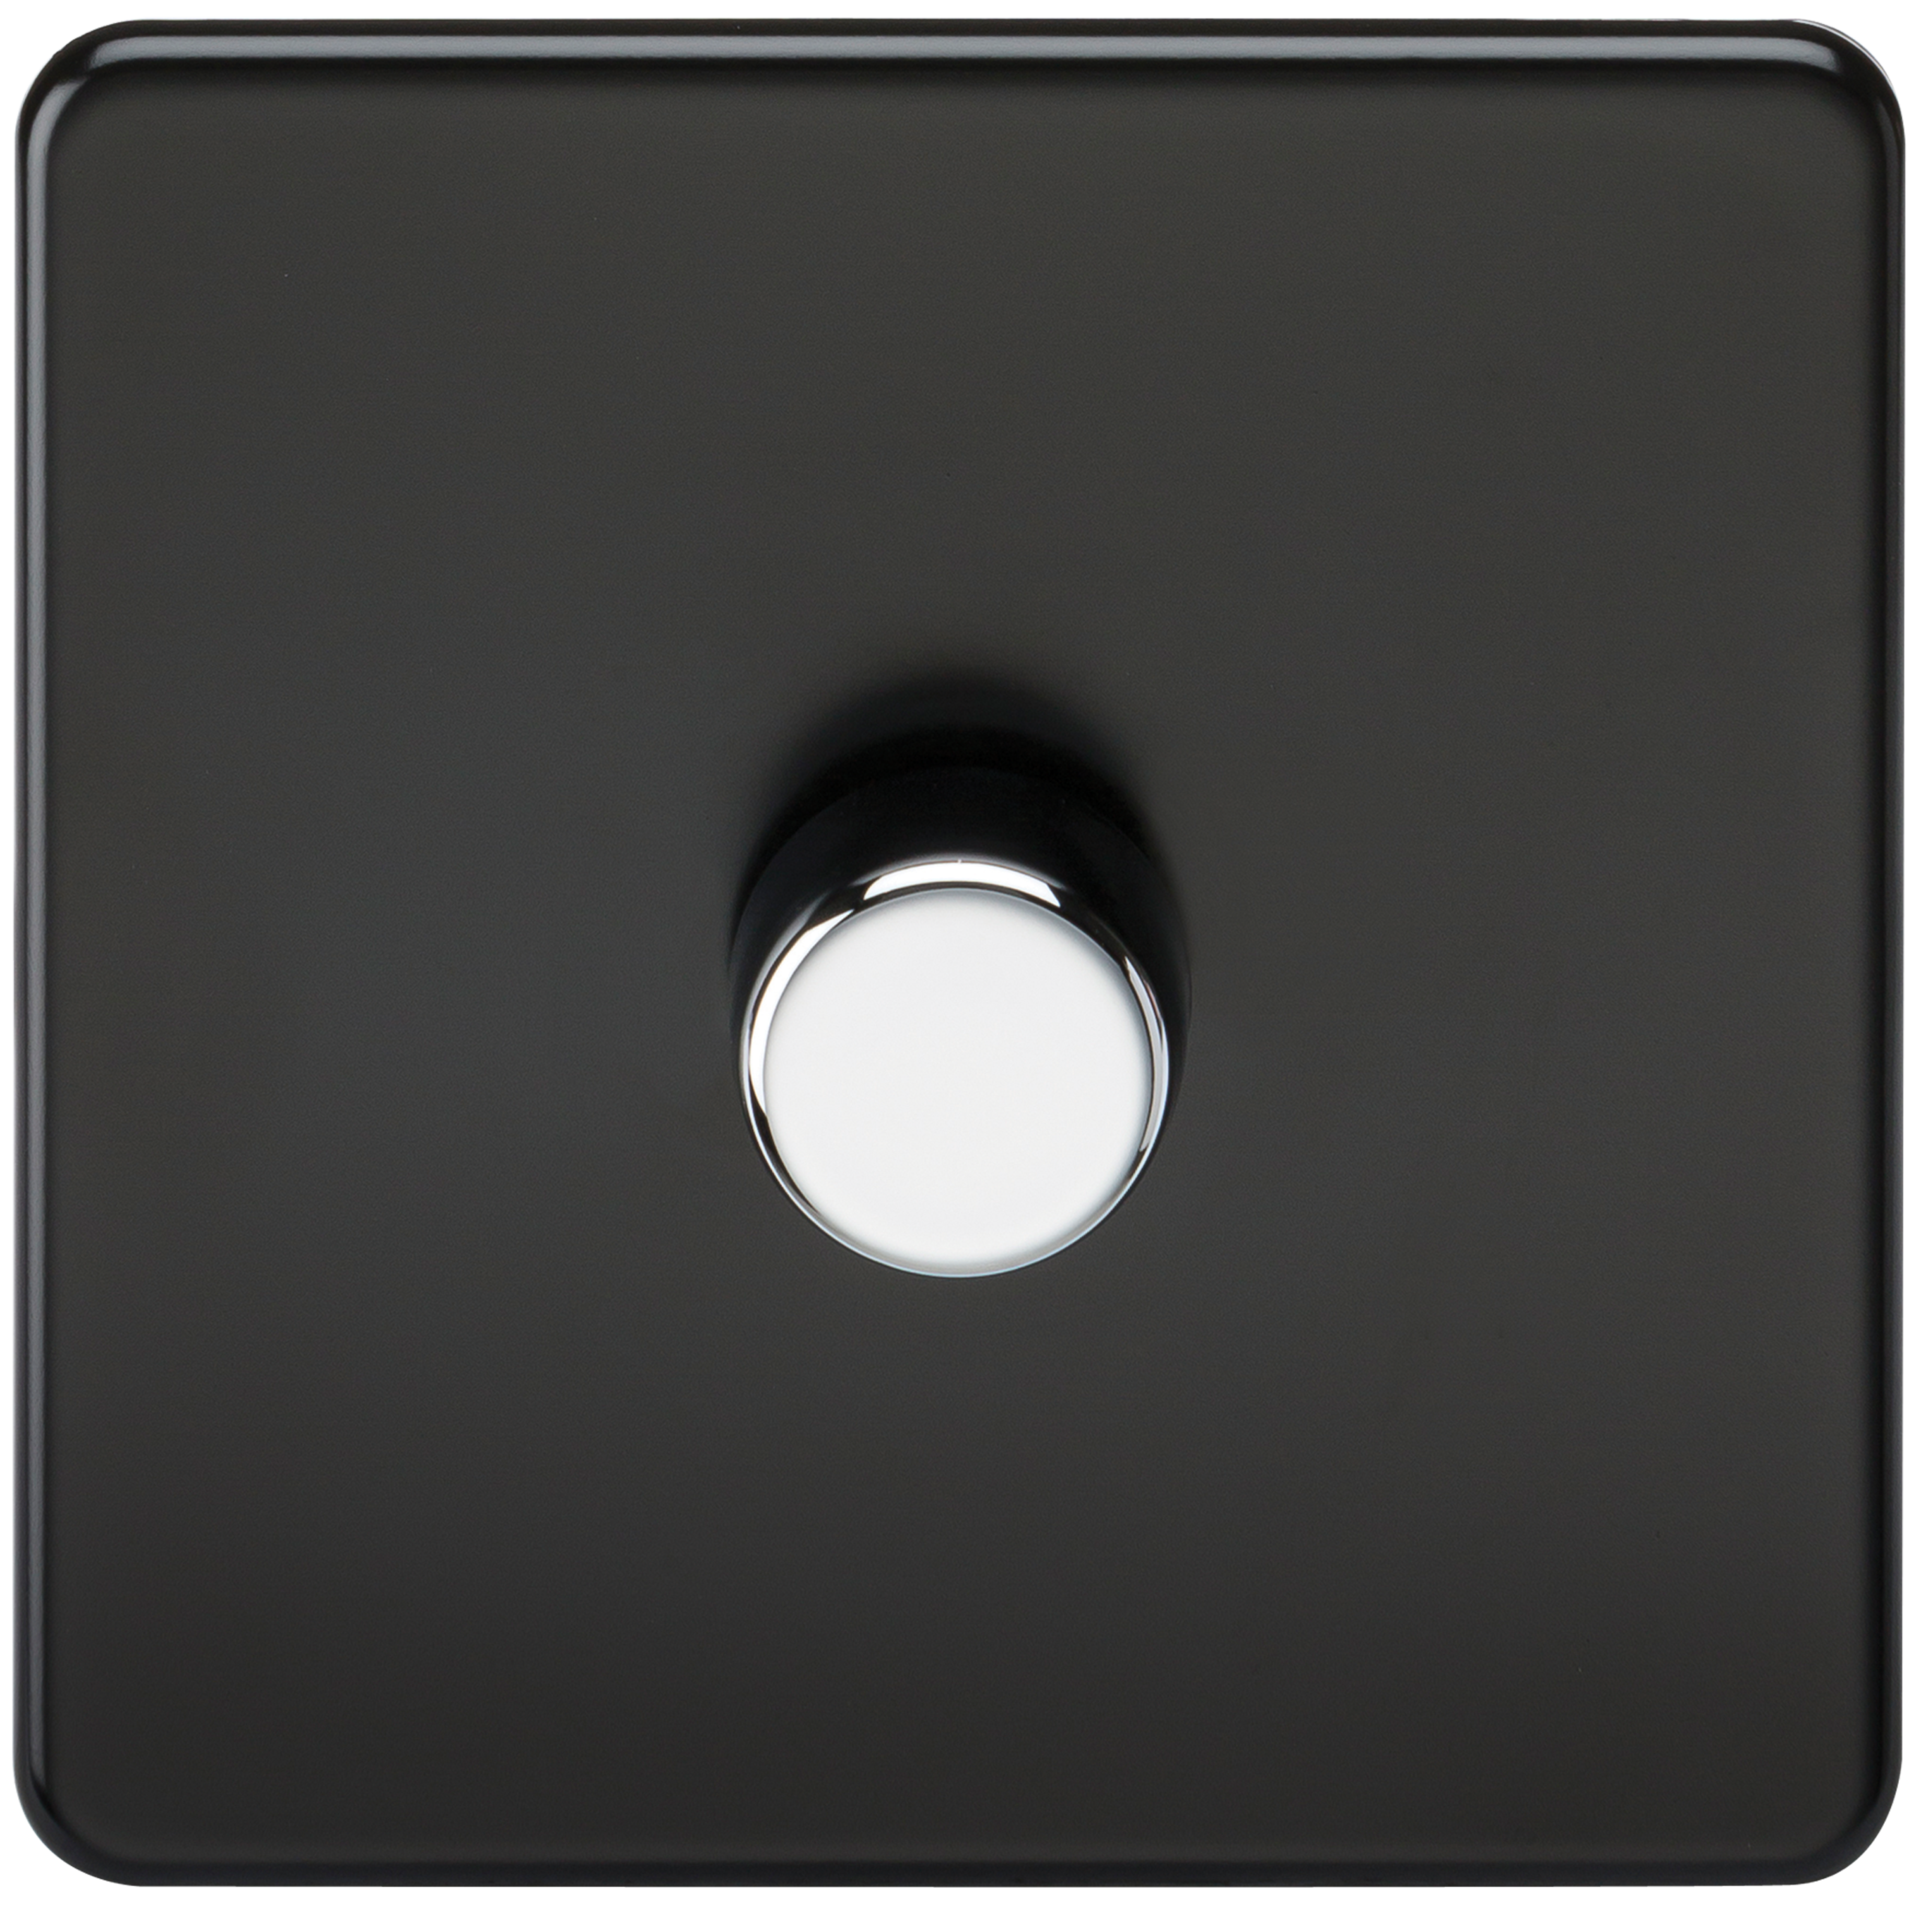 SCREWLESS 1G 2 WAY 40-400W DIMMER SWITCH - MATT BLACK